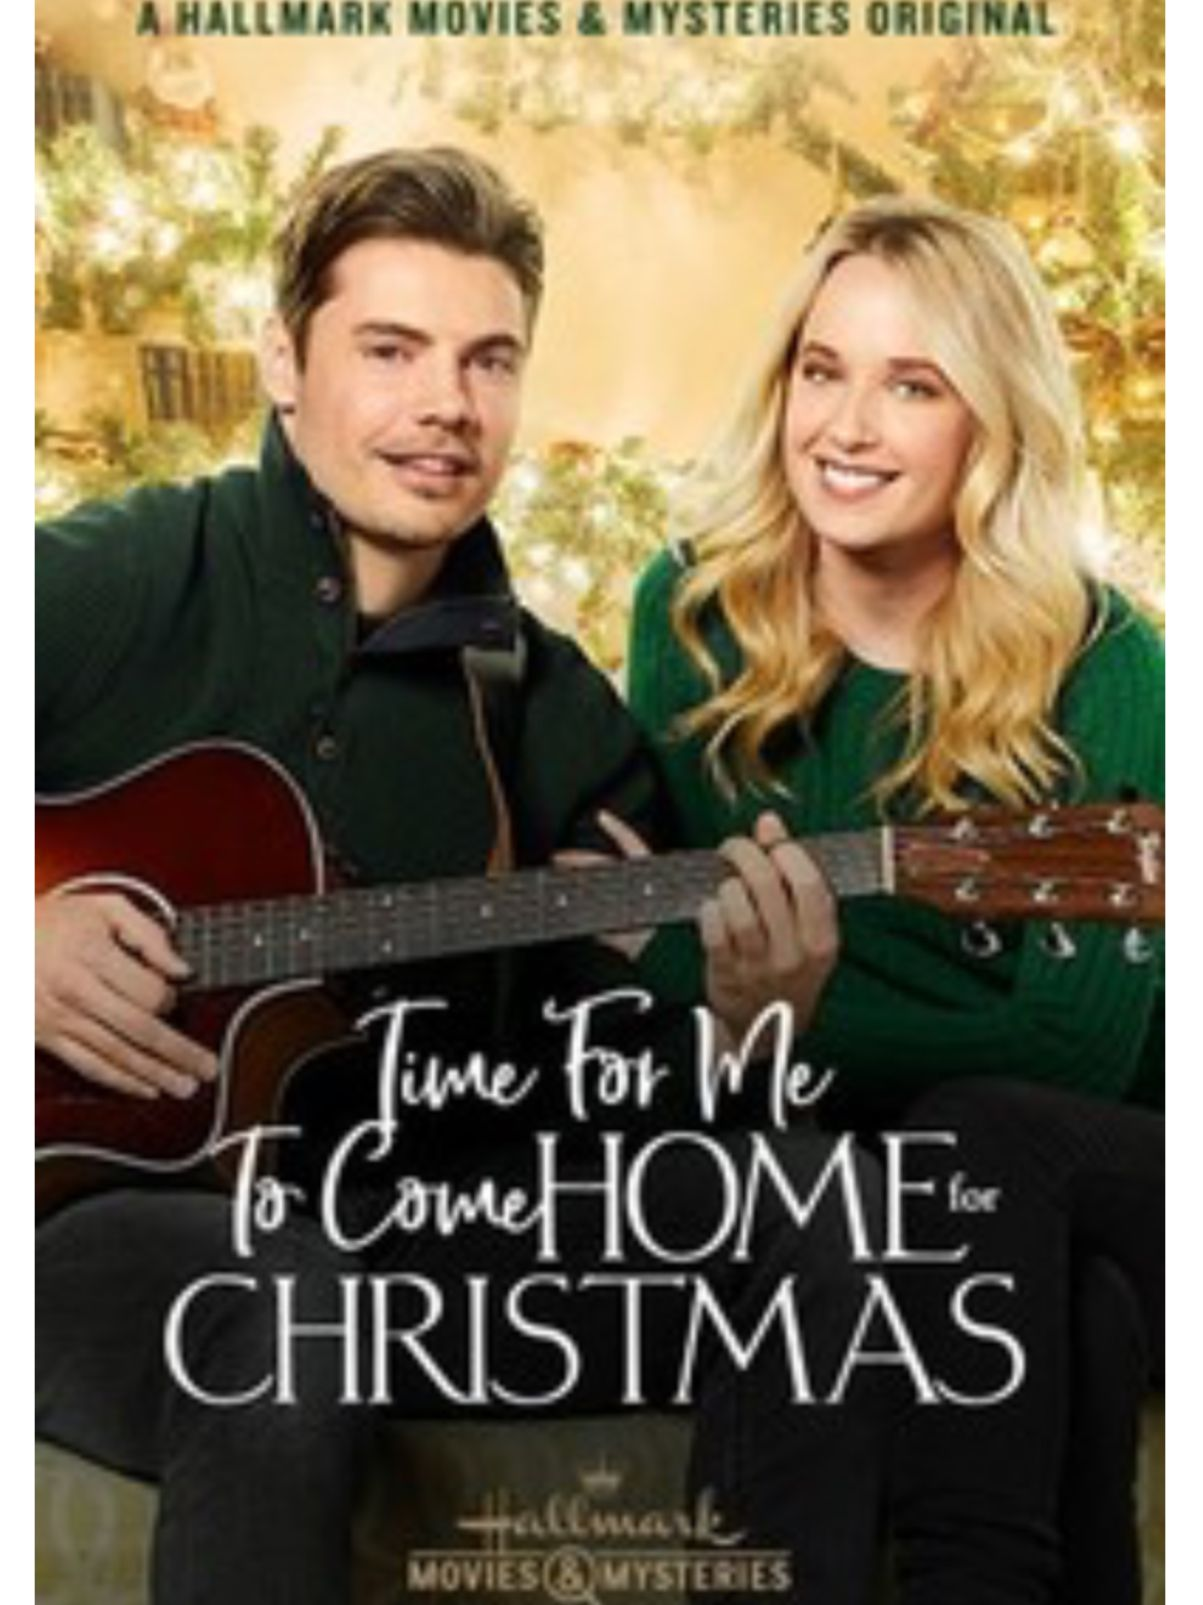 Time For Me To Come Home For Christmas Hallmark.Pin By Yasmin Nessaawal On Hallmark Movies In 2019